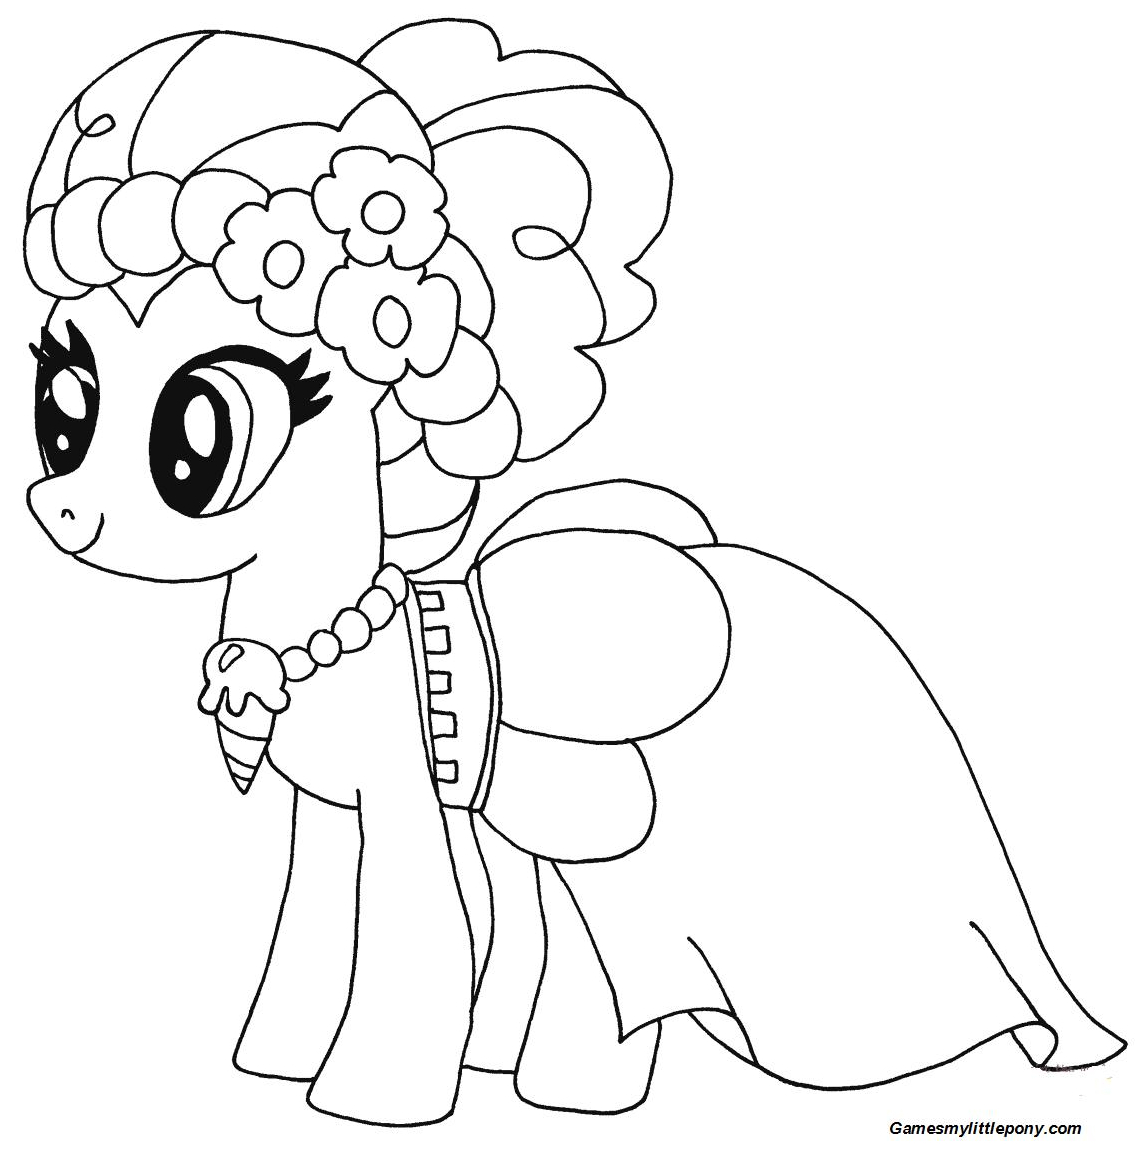 Pinkie Pie from My Little Pony Coloring Page